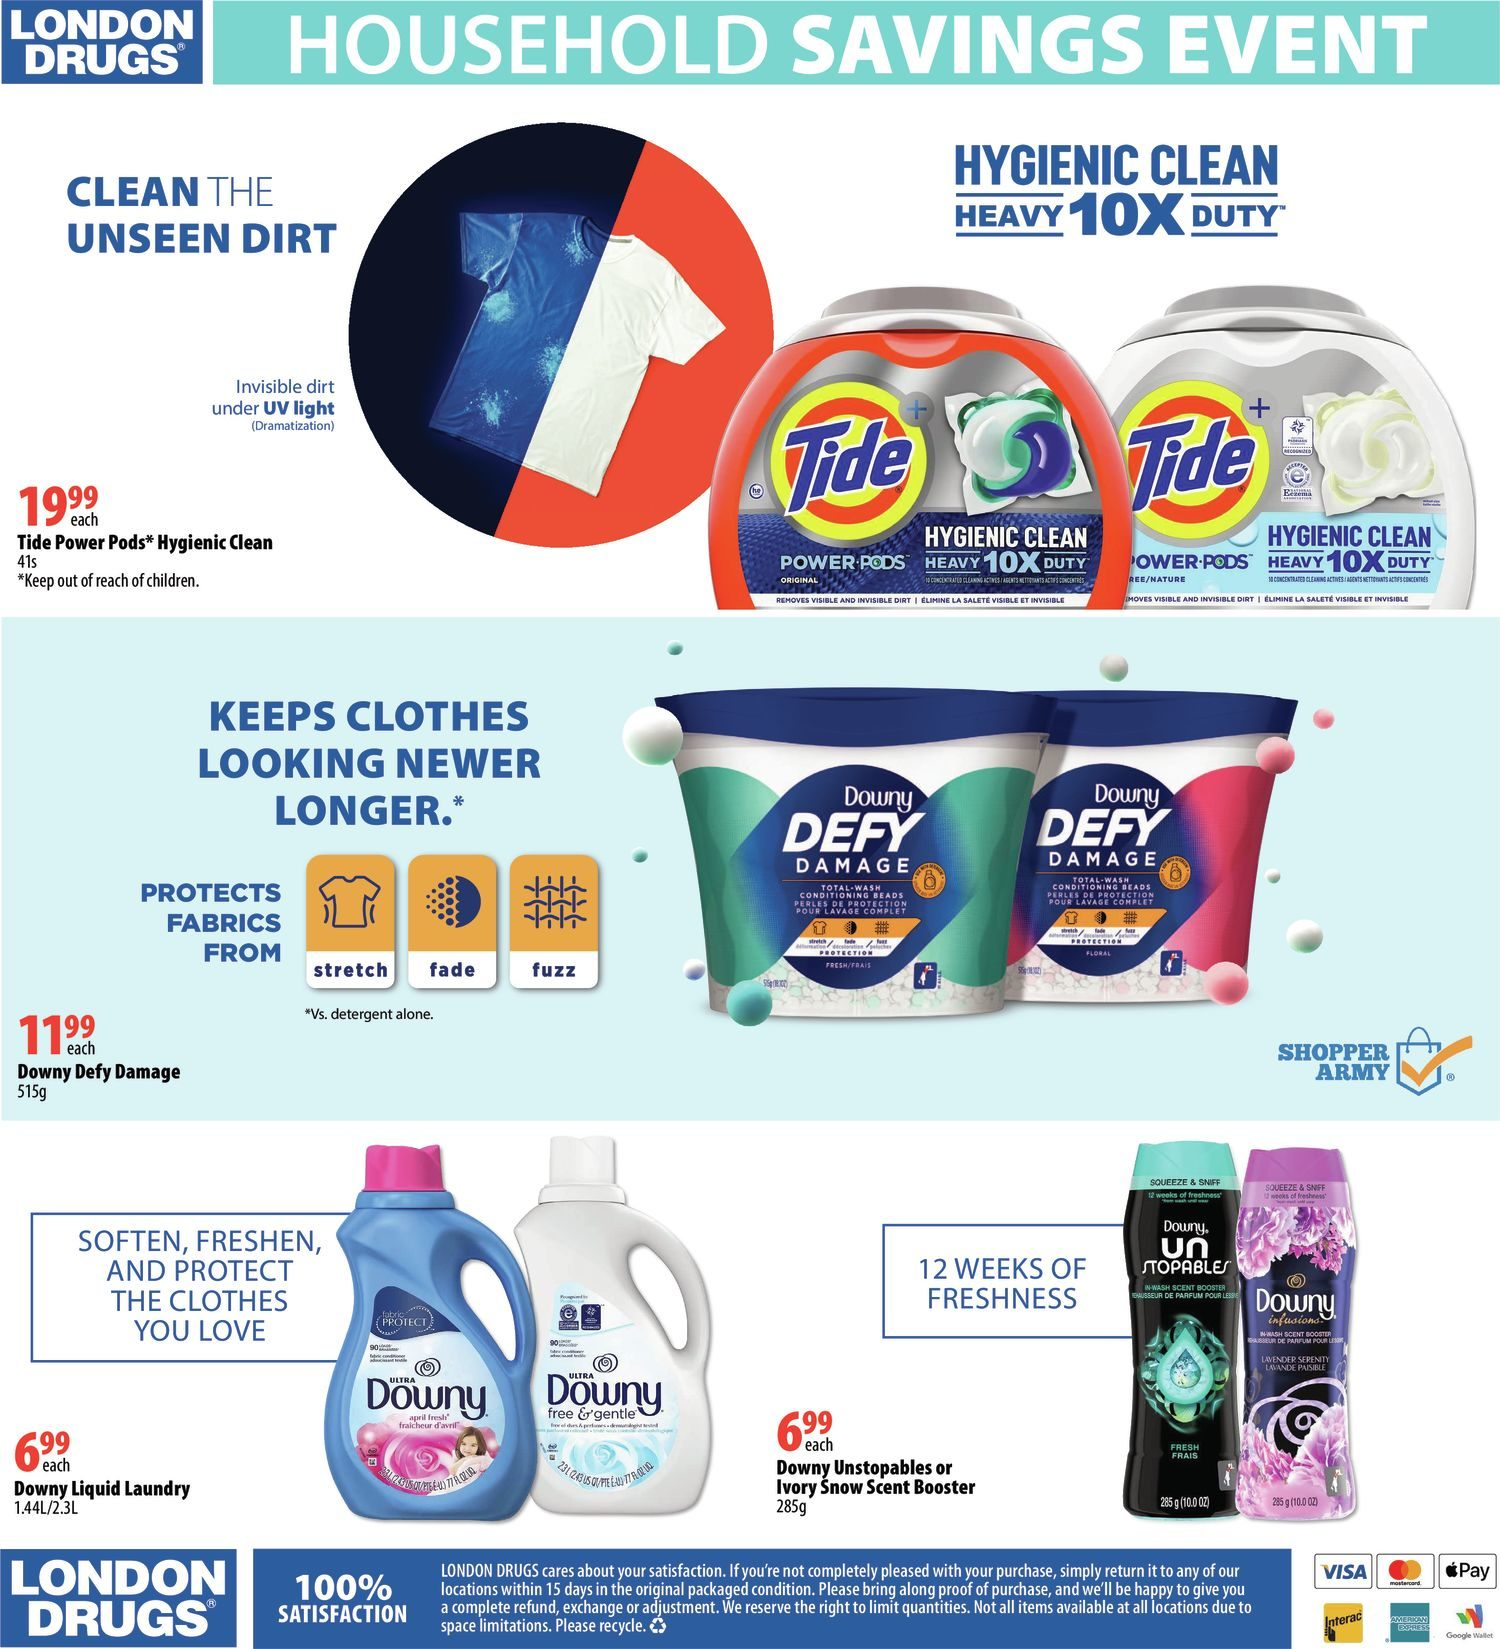 London Drugs - Household Savings Event - Page 4